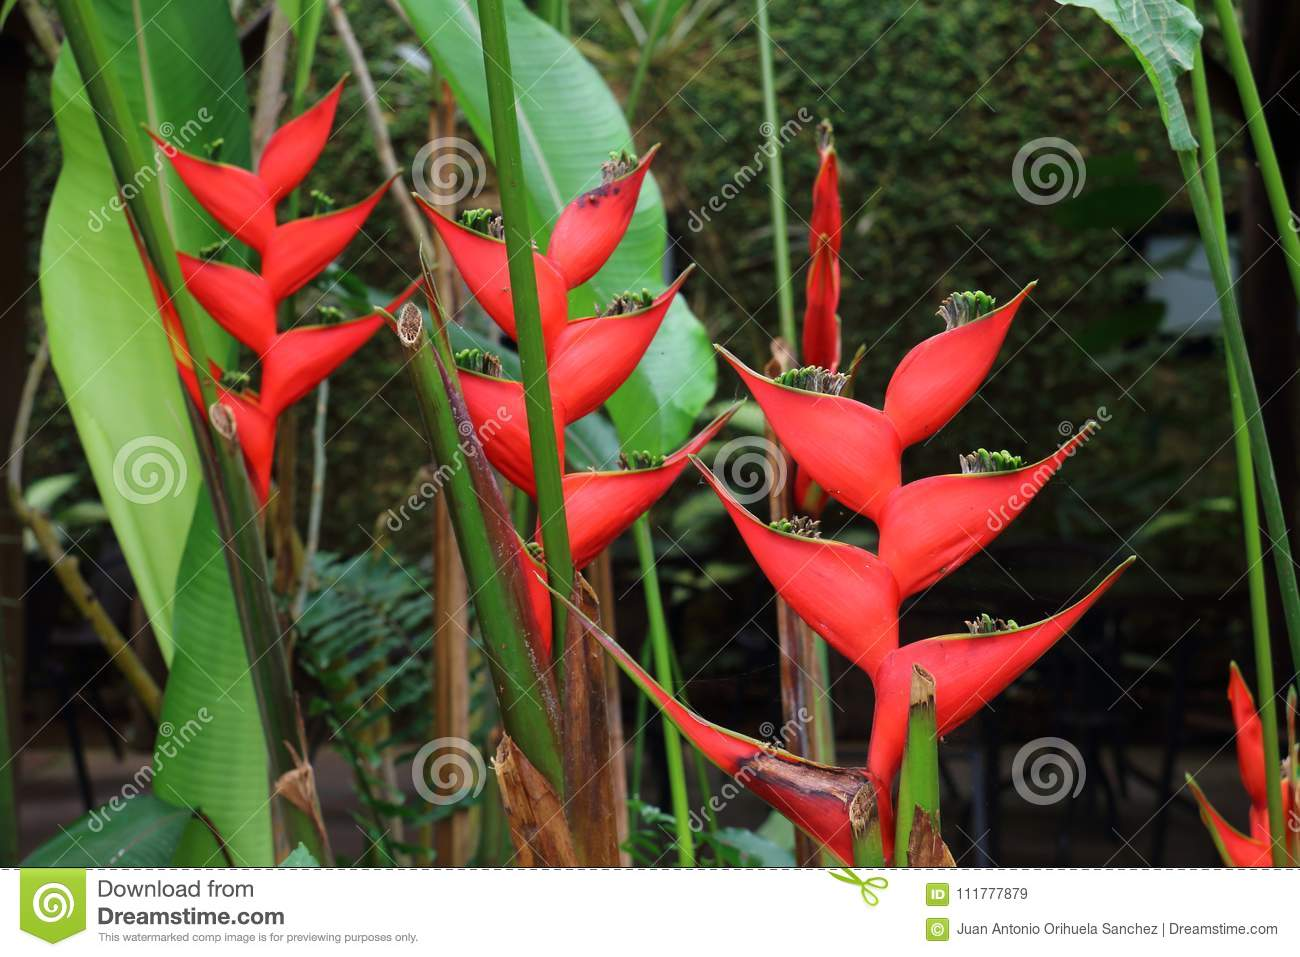 Exotic tropical vegetation